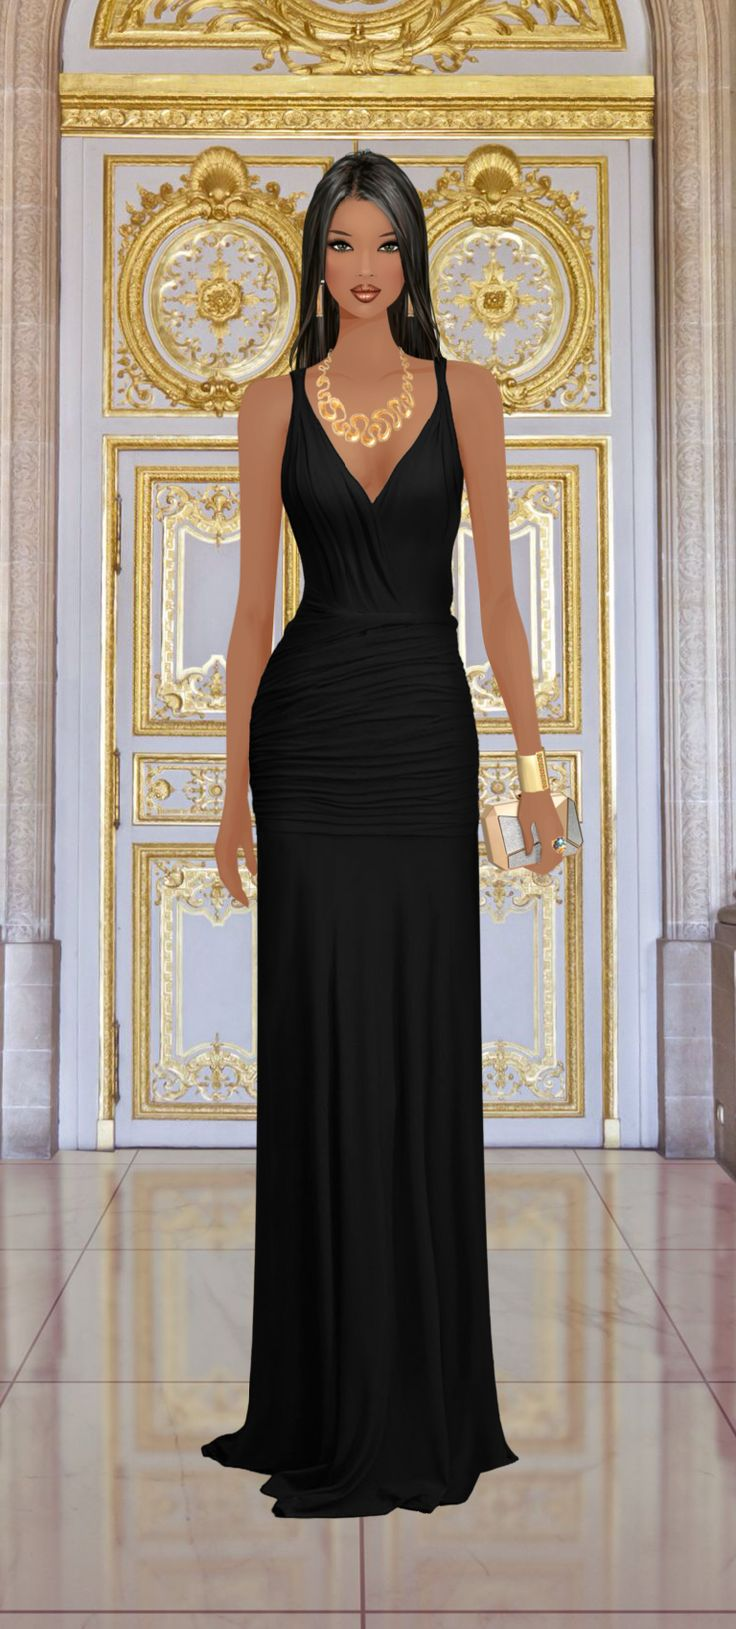 Covet Fashion Game Gilded Gala | My Style | Fashion, Covet ...